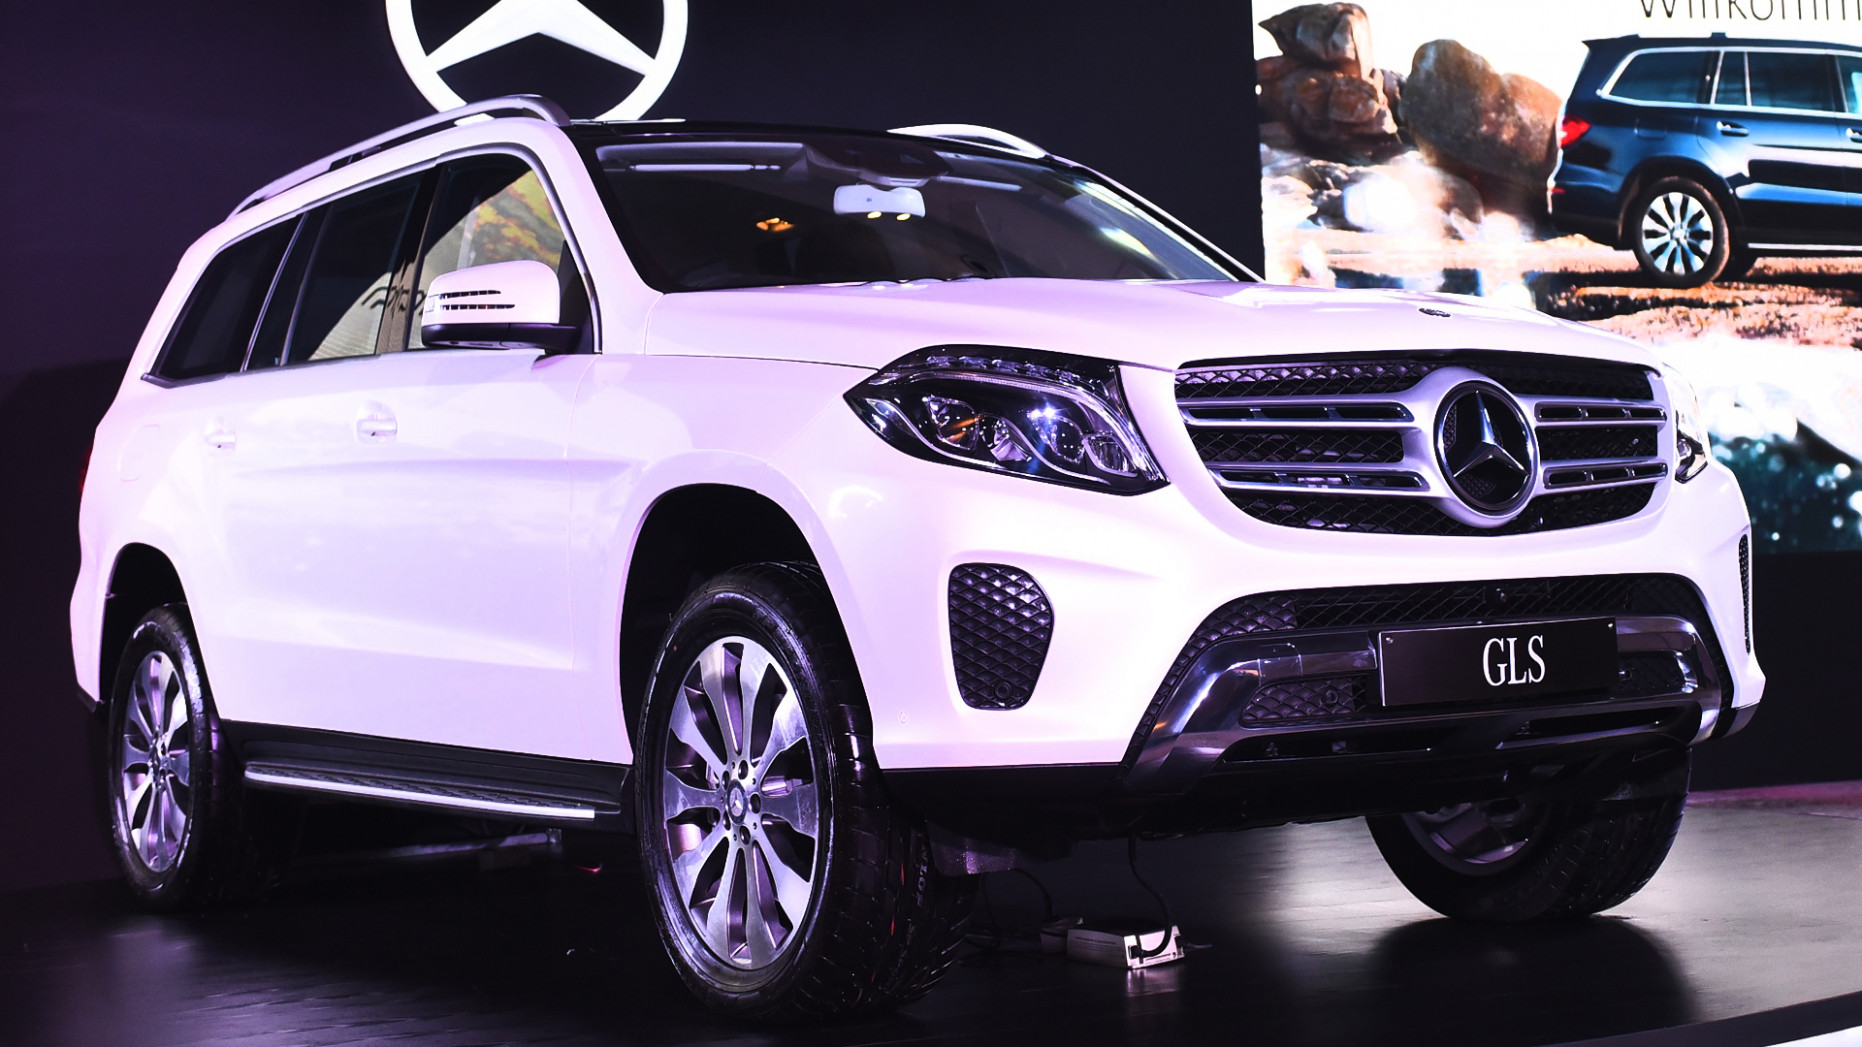 Mercedes-Benz GLS 8 - Price, Mileage, Reviews, Specification ..